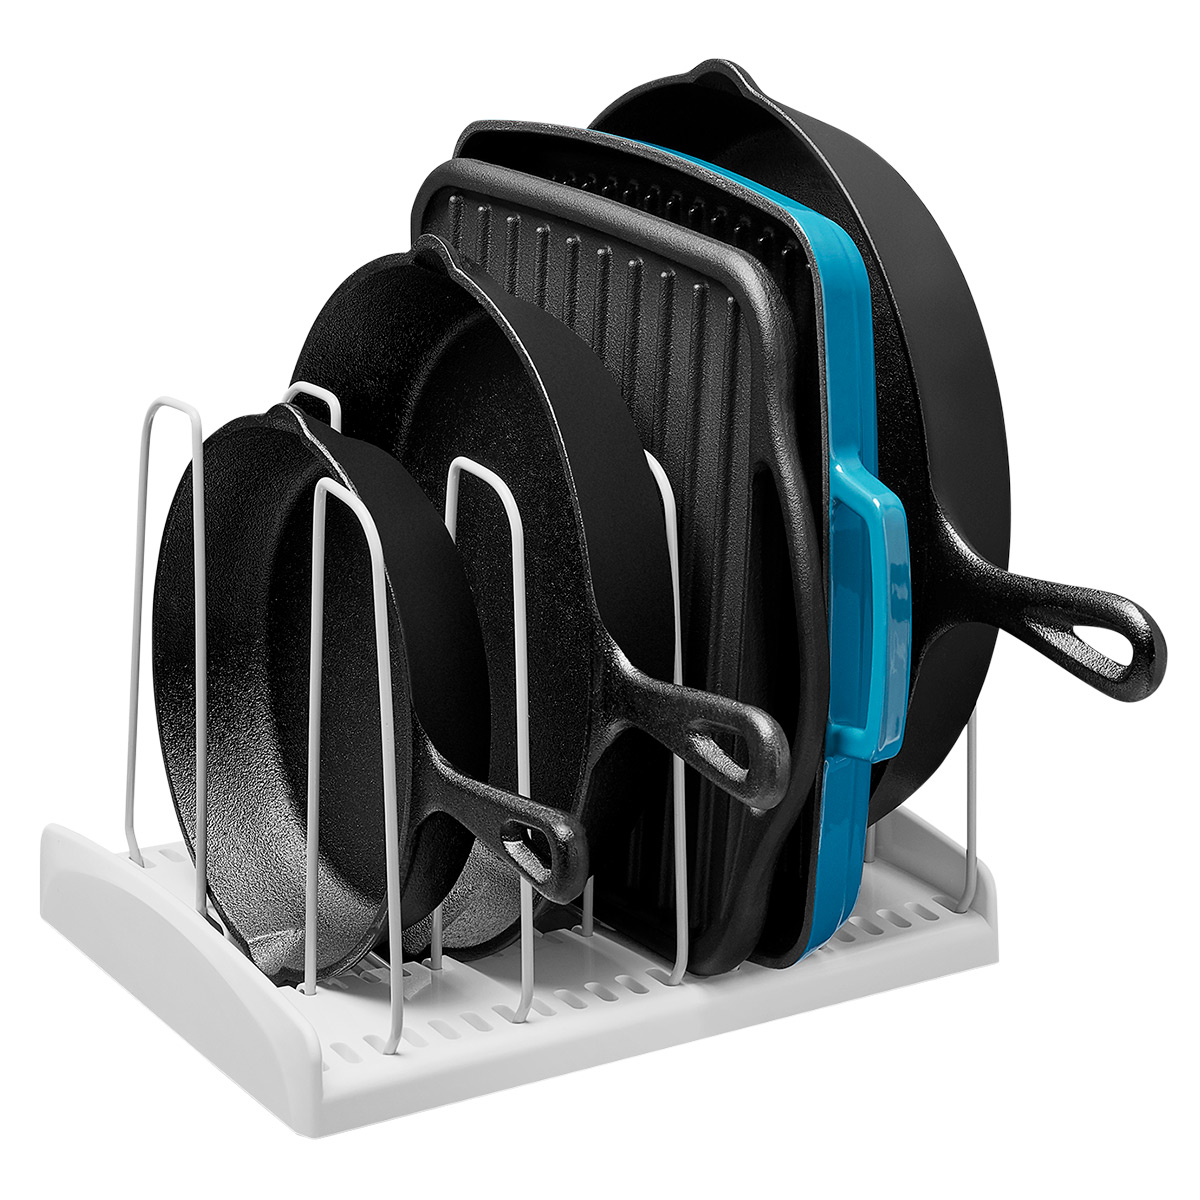 Adjustable Cookware Rack